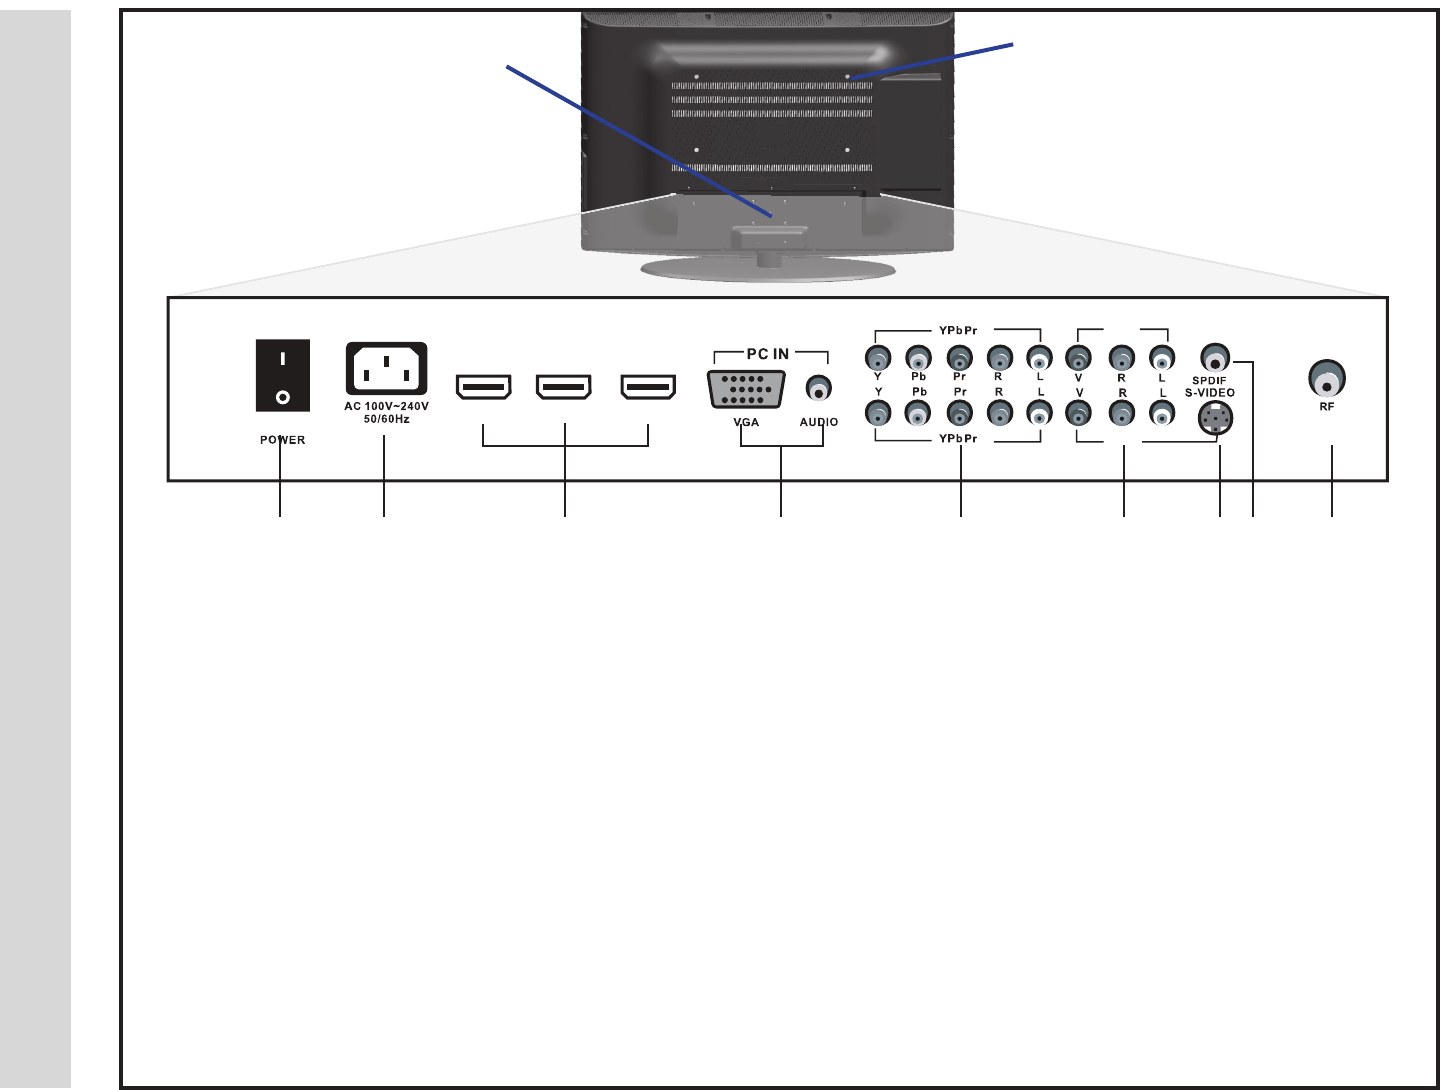 Page 10 of apex digital flat panel television ld4088 user guide 5 ypbpr 12 inputs and rl audio inputs 2 connect fandeluxe Gallery